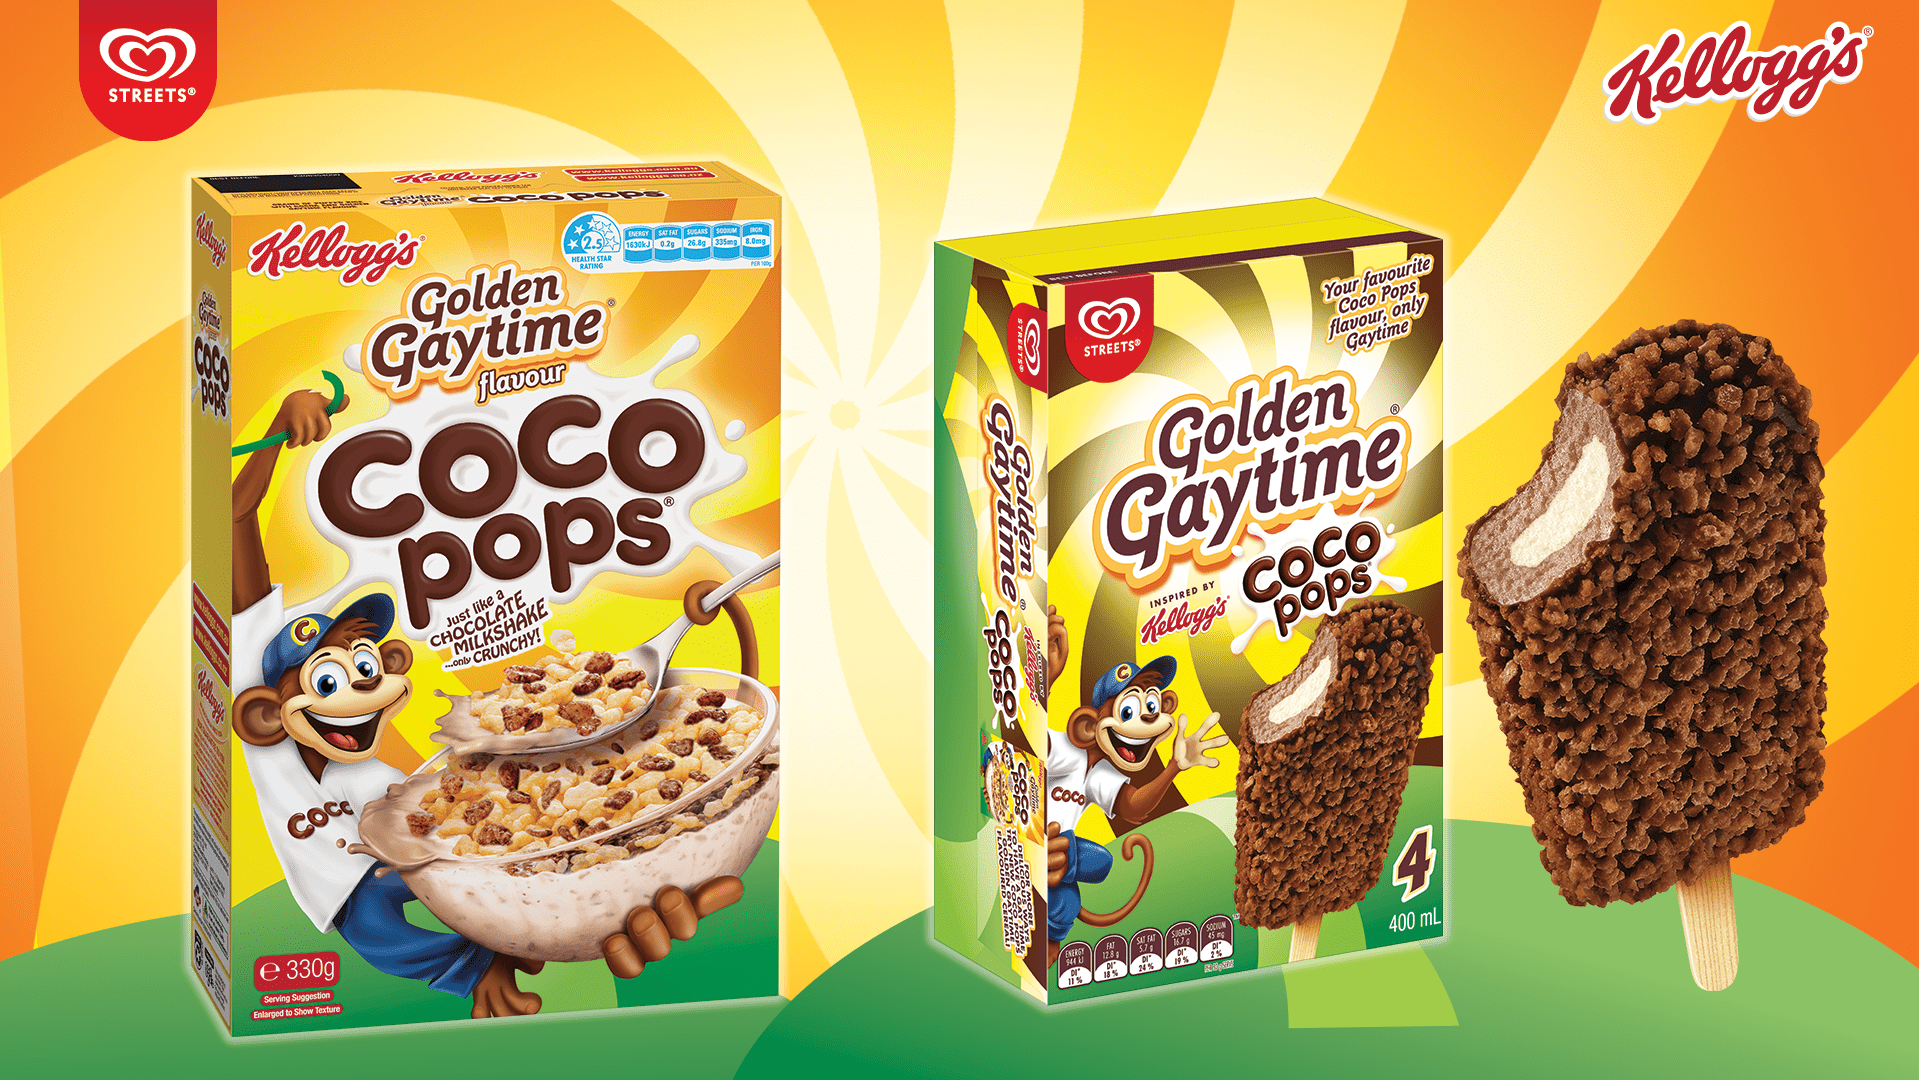 image for Golden Gaytime & Coco Pops Are 'Freaky Friday-ing' Their Products!